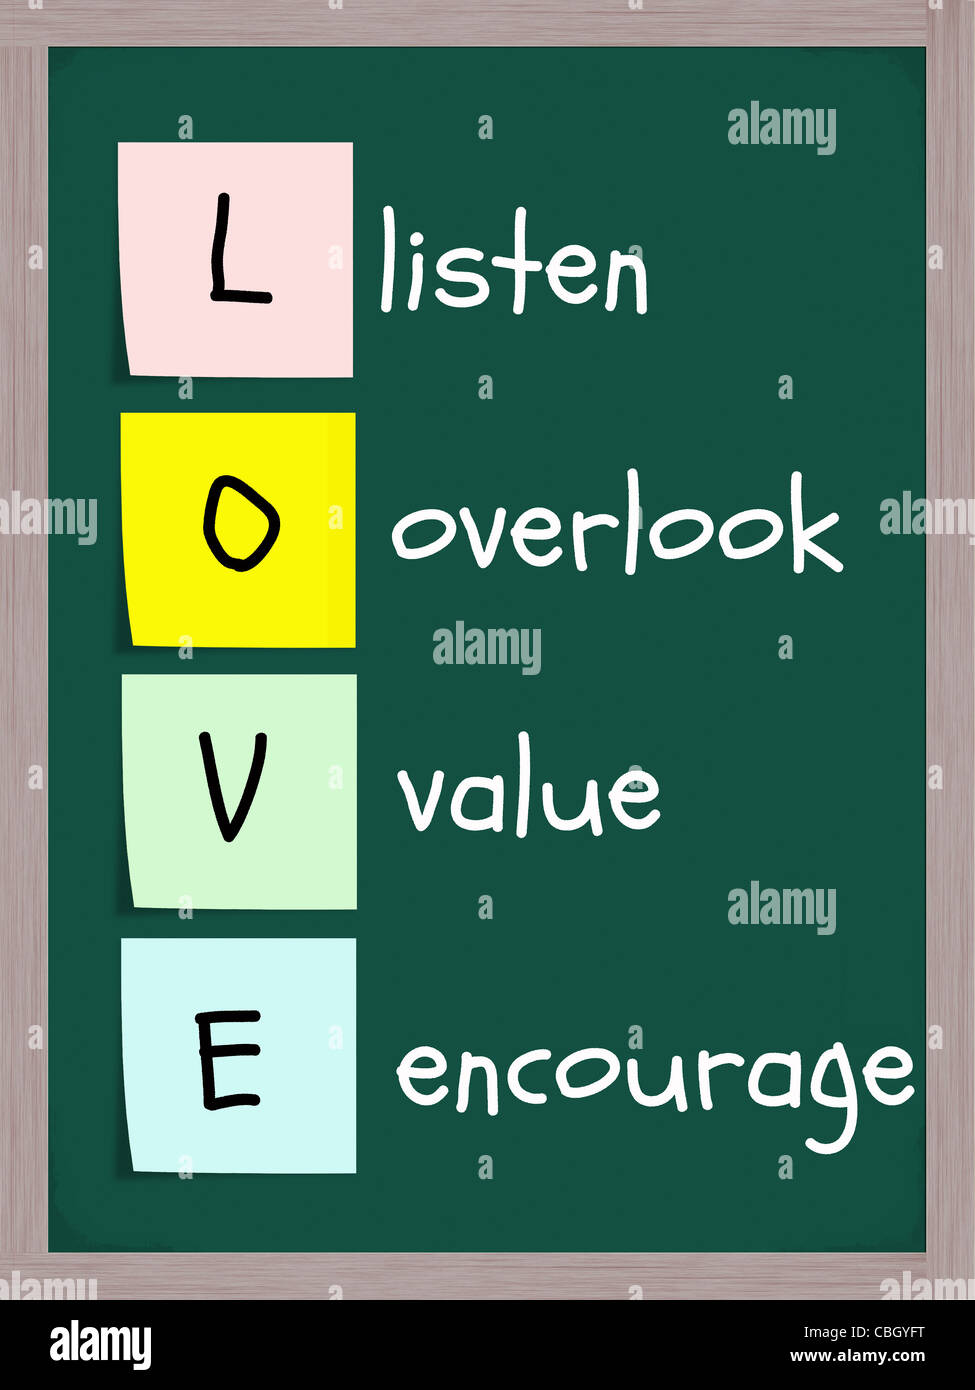 LOVE acronym, listen, overlook, value, encourage on colorful sticky notes on a blackboard with words written in - Stock Image